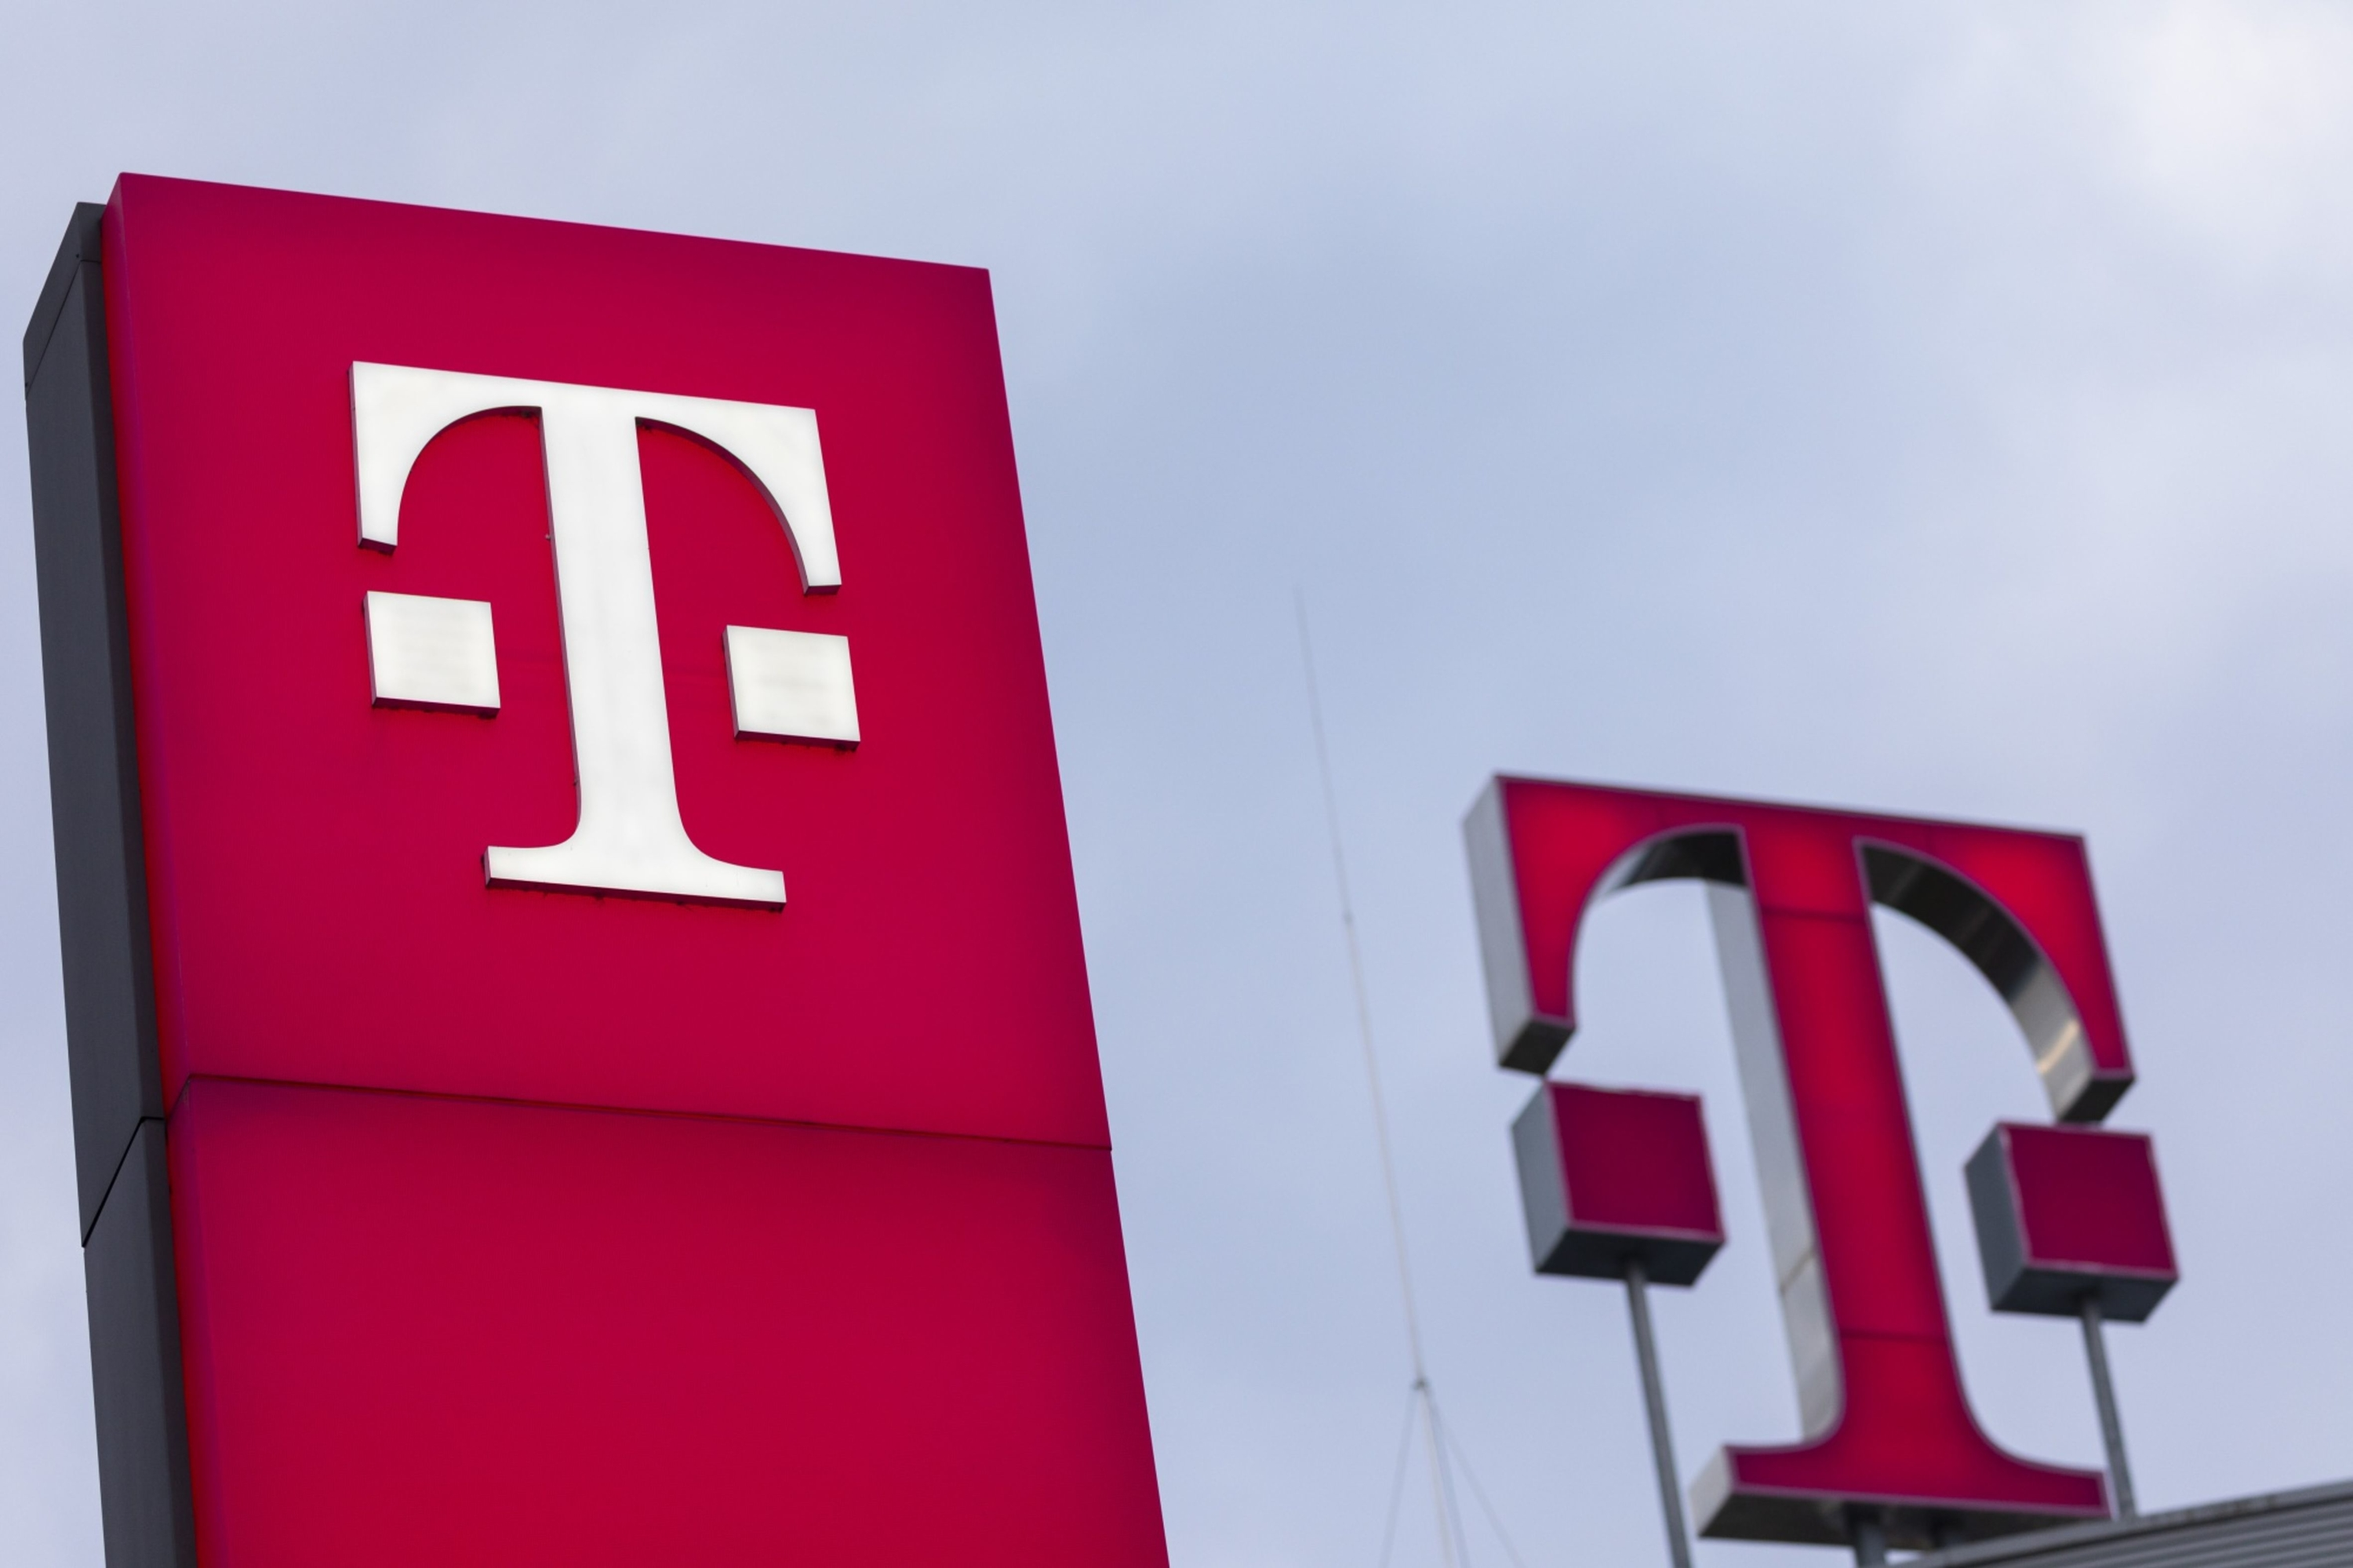 T-Mobile says it's now the second-largest carrier. Forrester analyst says that's 'bunk'